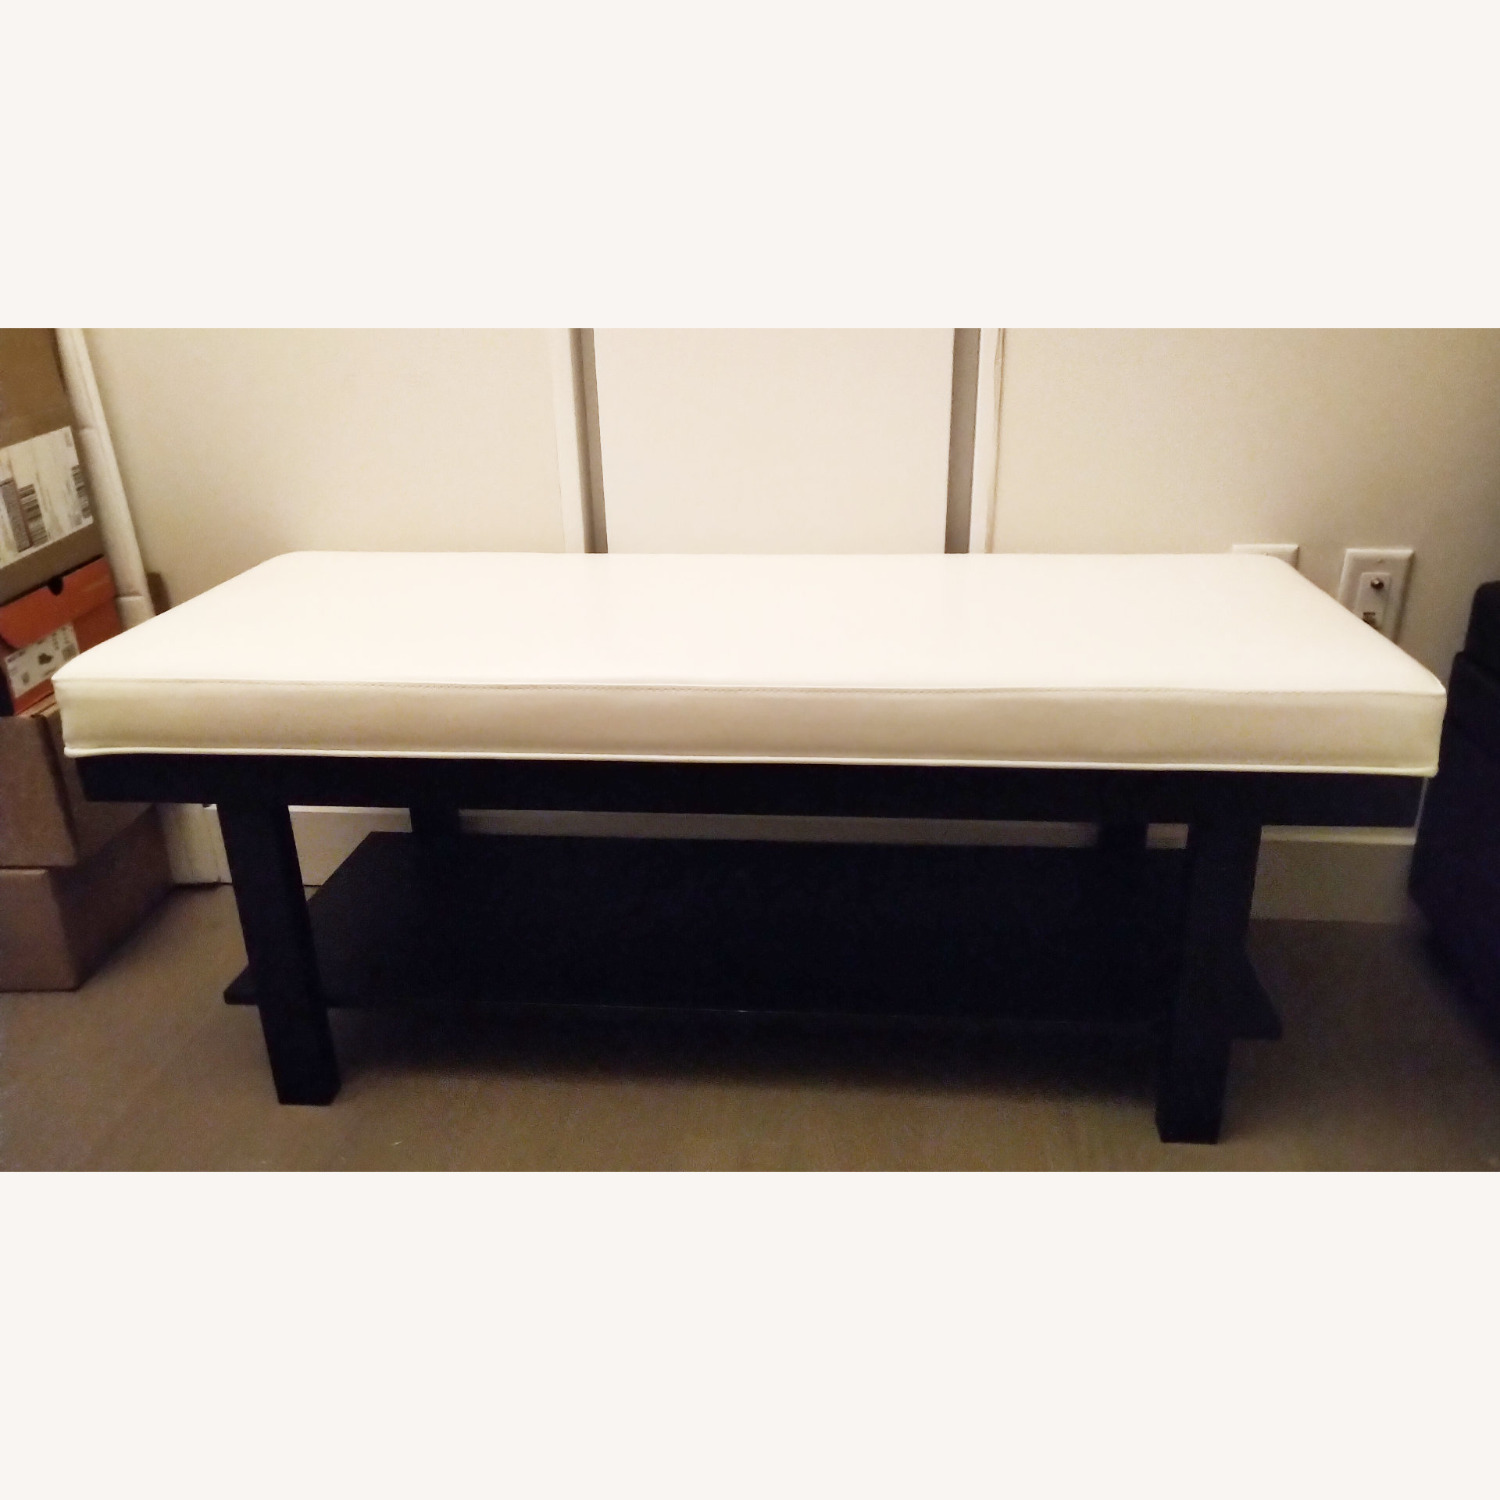 Wayfair Espresso Wood and White Faux Leather Bench - image-1